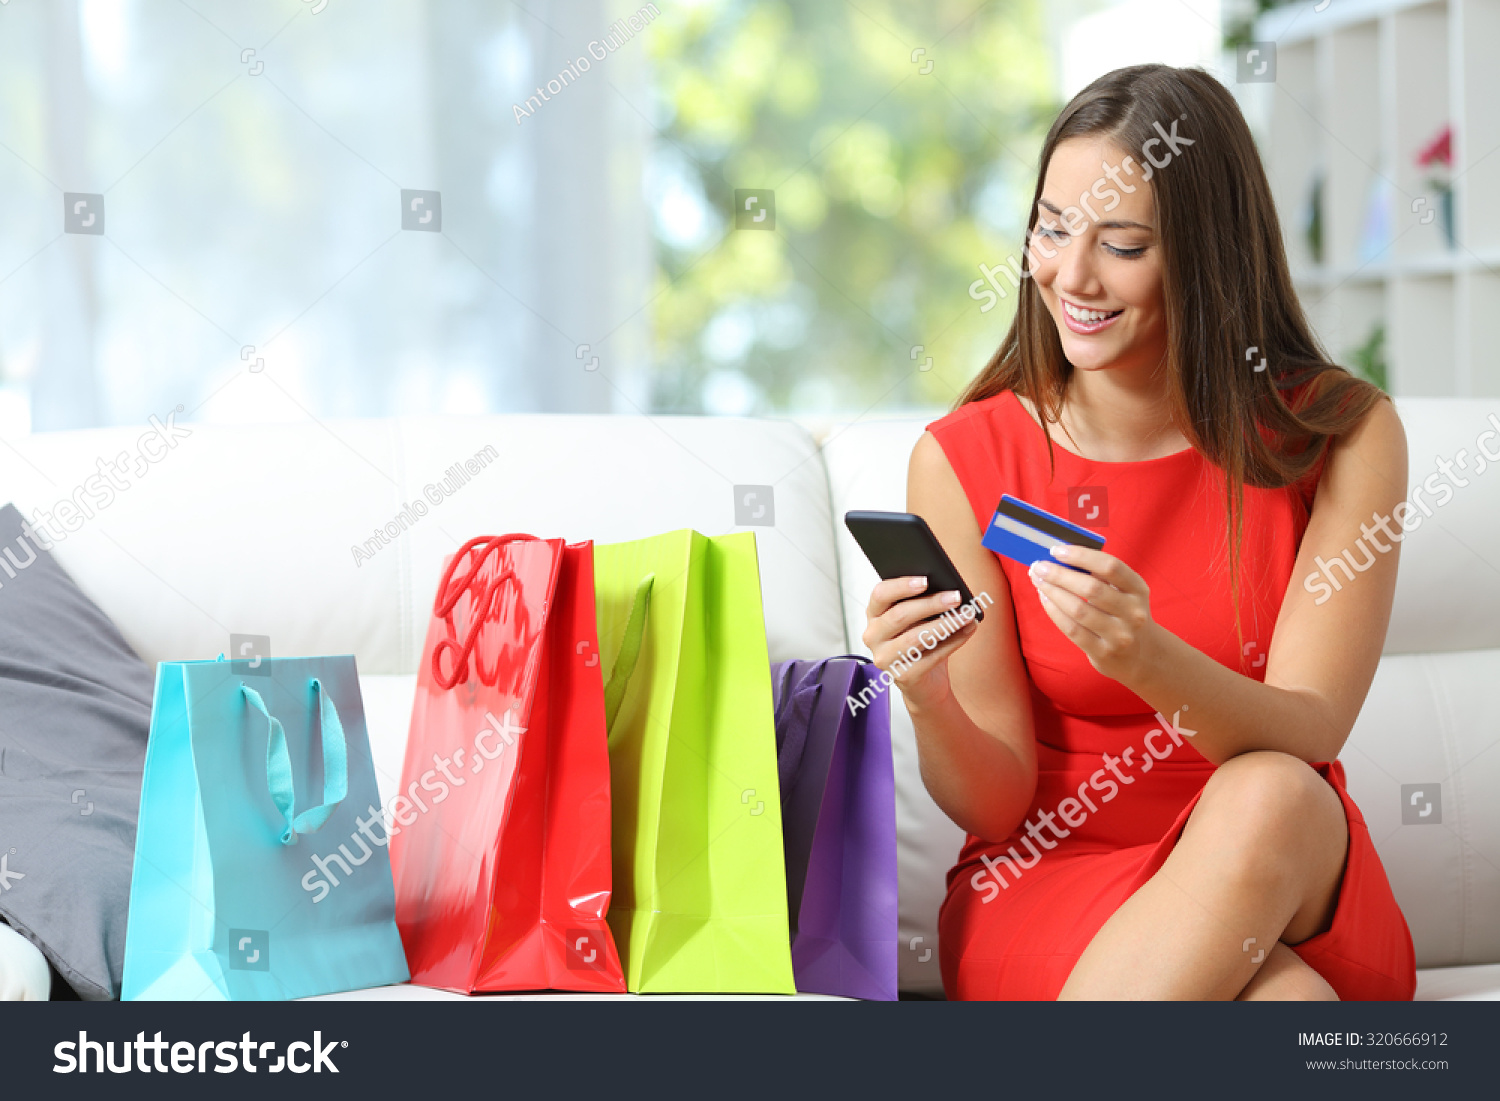 Clothing credit cards online